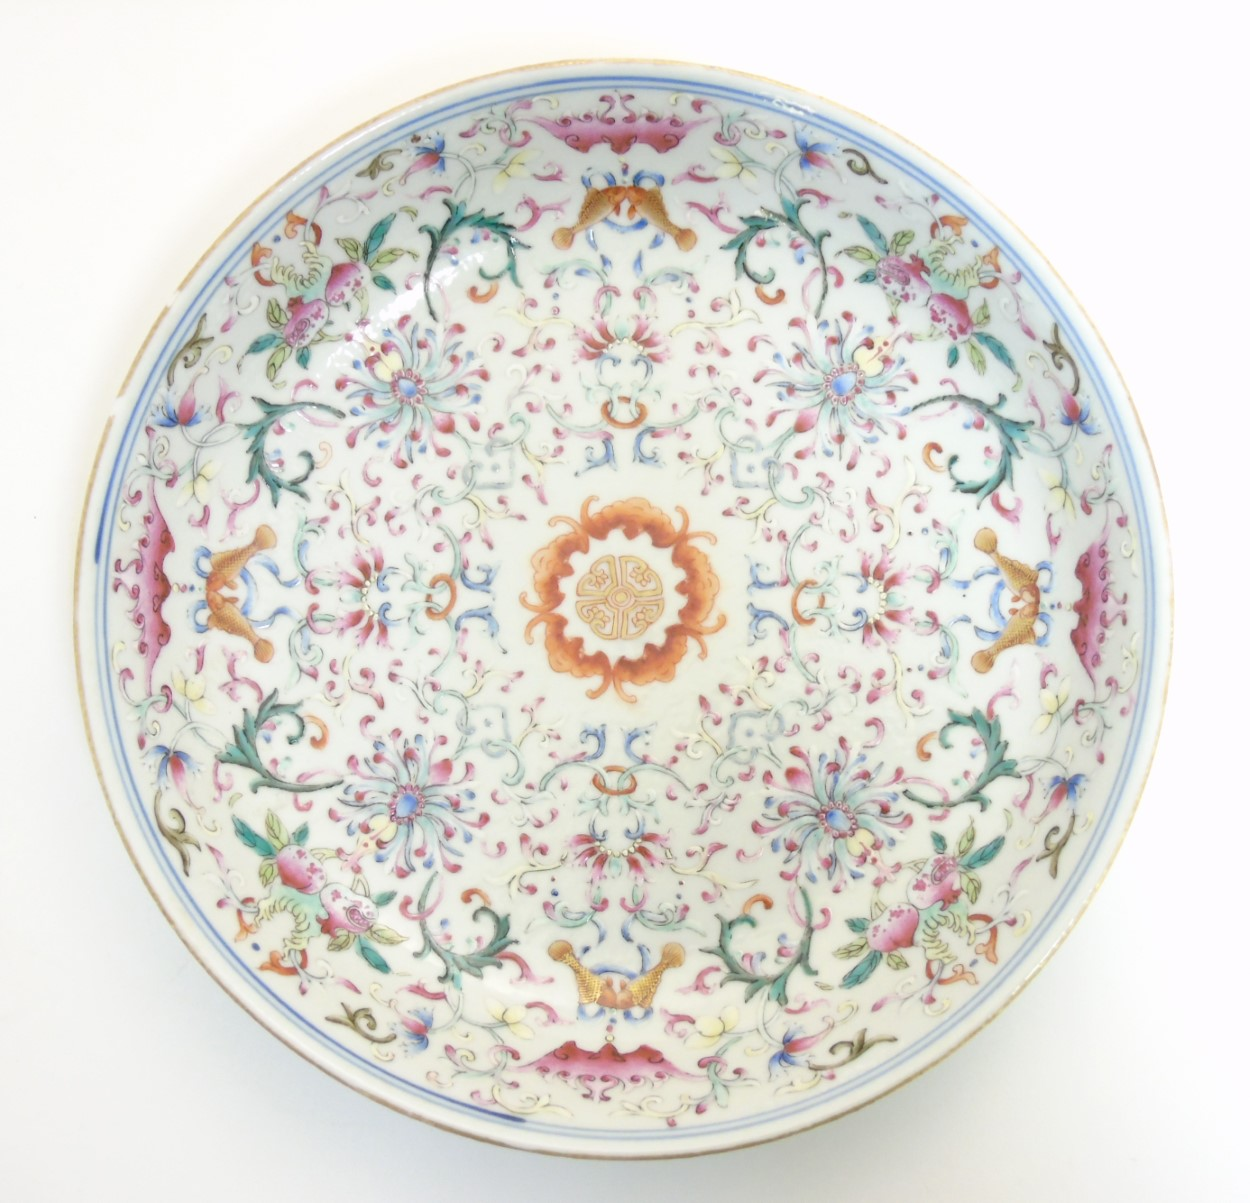 Lot 12 - A Chinese famille rose plate, decorated with scrolling lotus flowers, having bat,